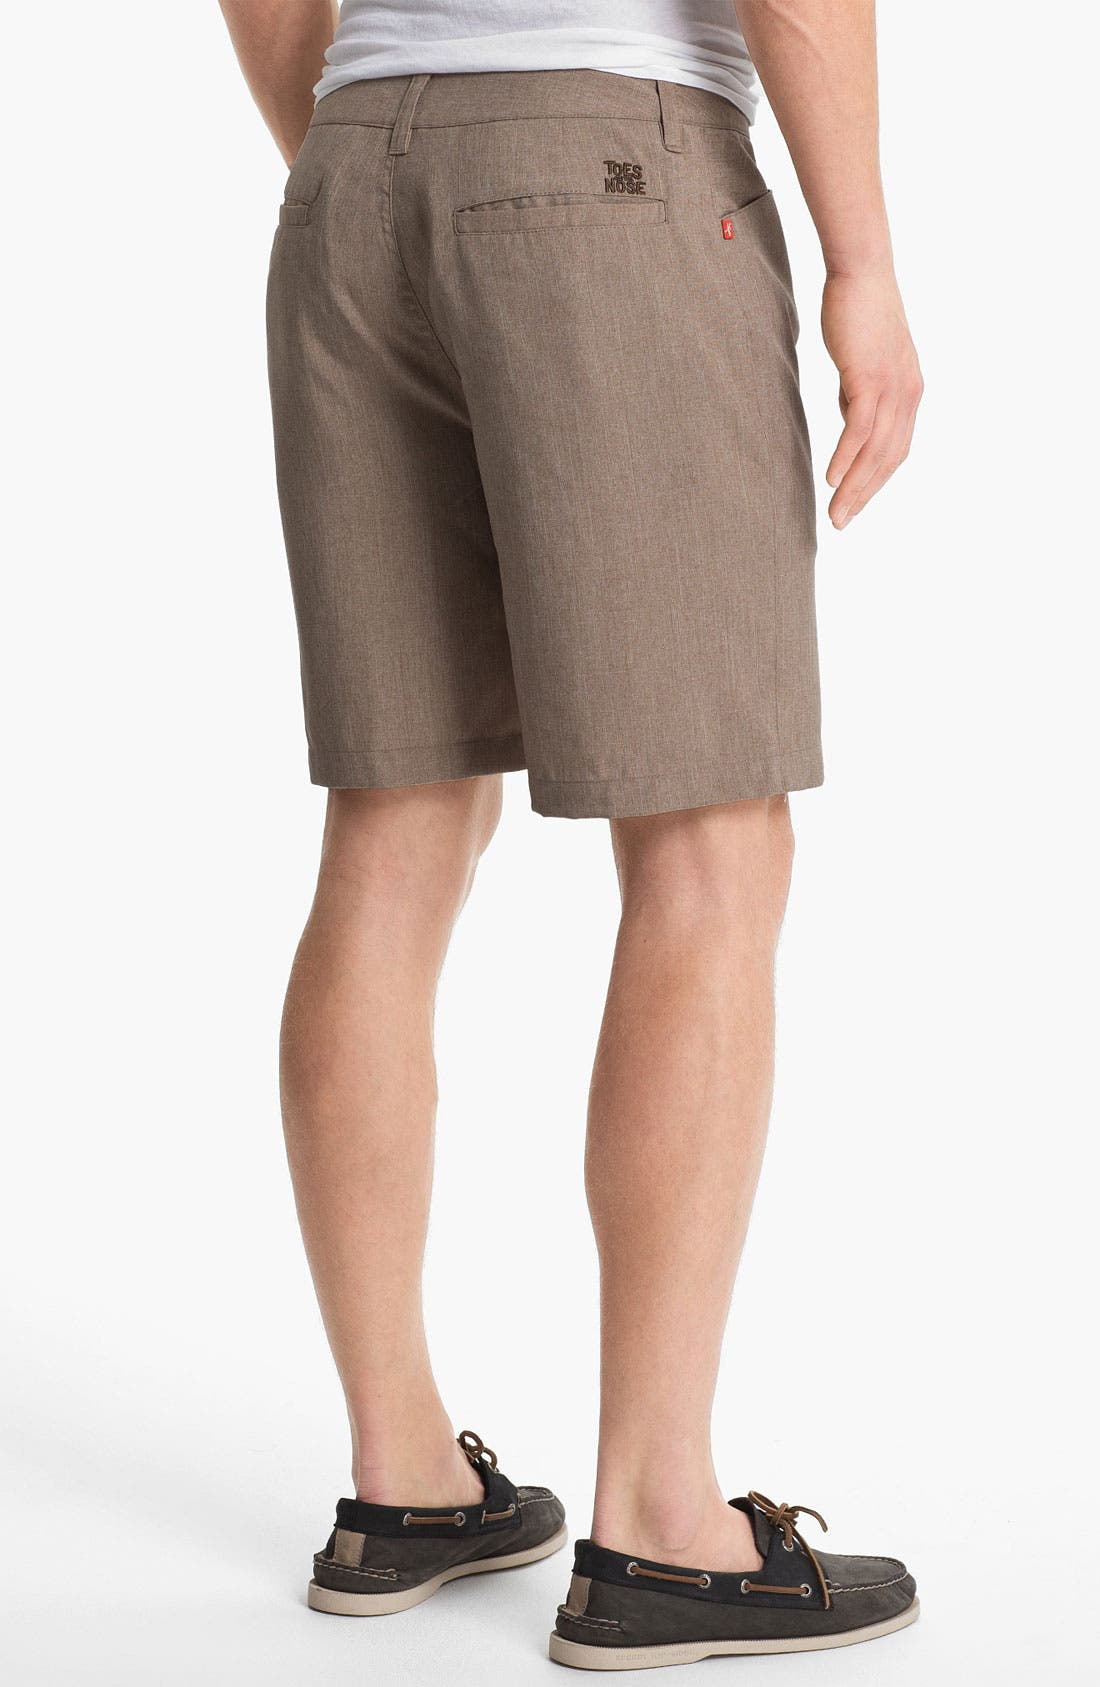 Alternate Image 2  - Toes on the Nose 'Rocker' Khaki Shorts